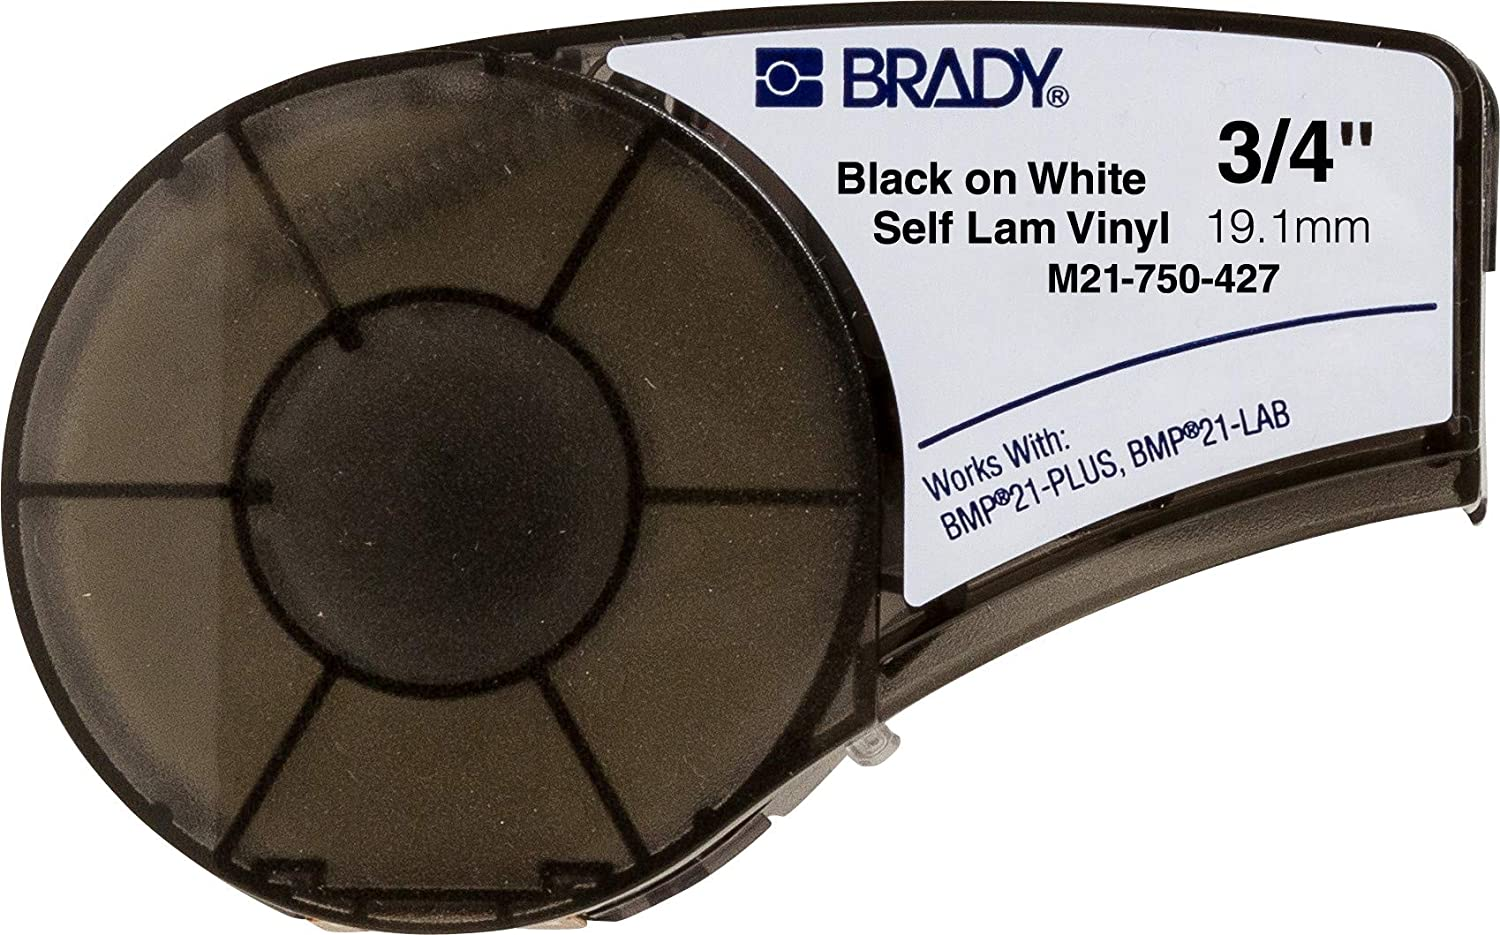 Brady Authentic (M21-750-427) Self-Laminating Wire Wrap for Control Panels, Electrical Panels and Datacom Cable Labeling, Black on White material - Designed for BMP21-PLUS and BMP21-LAB Label Printers, .75